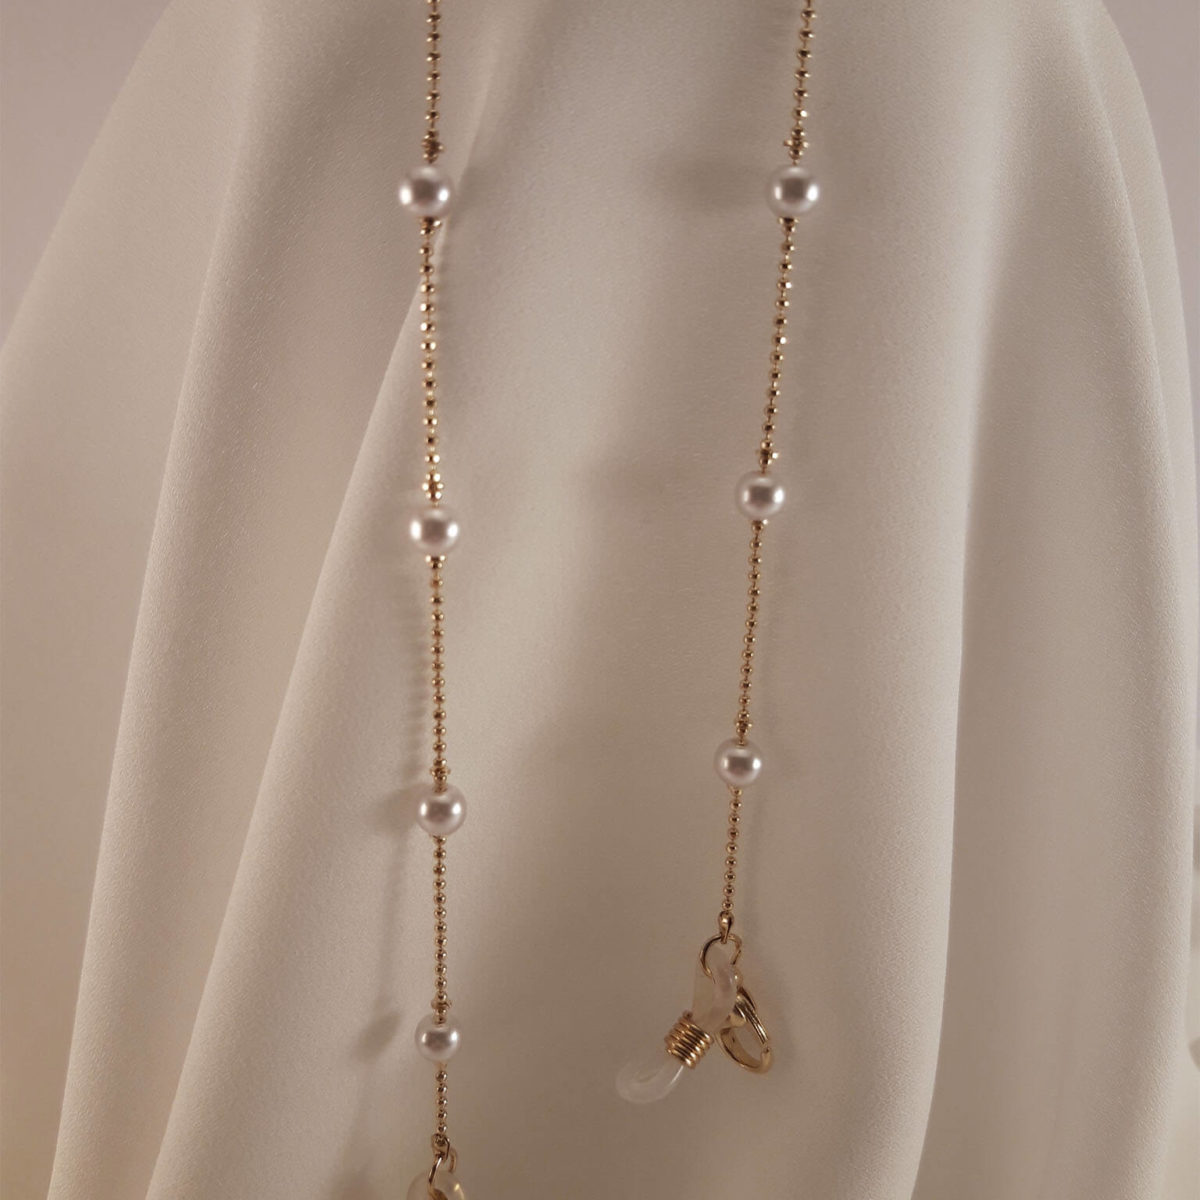 Golden Chain With Small Pearls